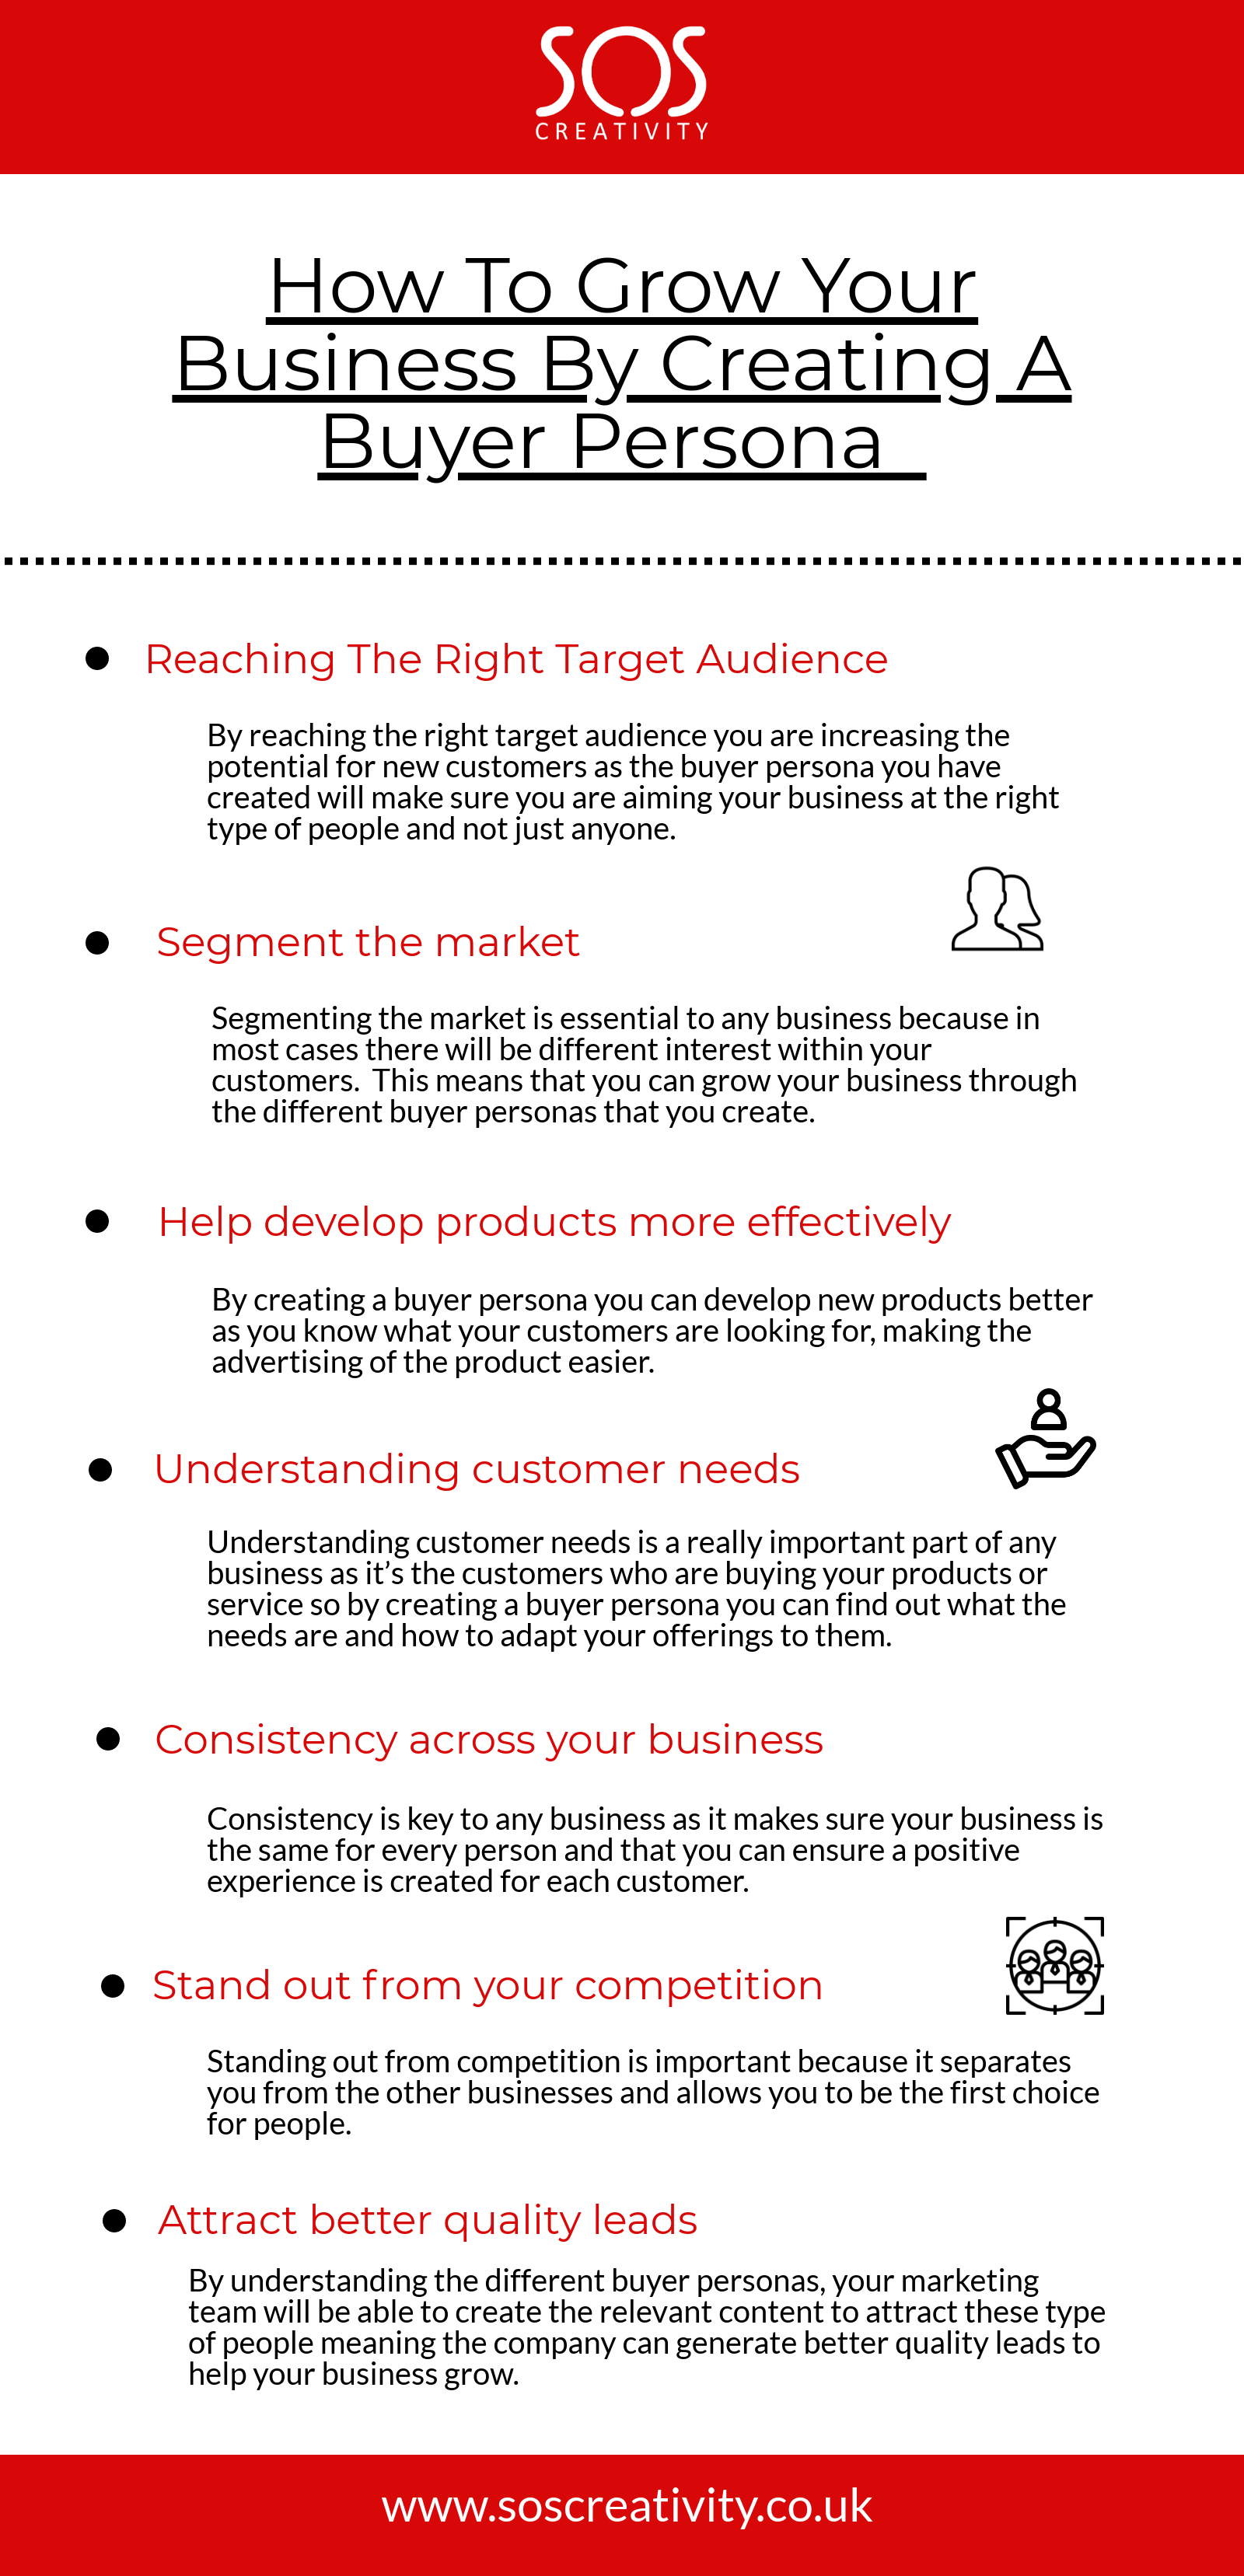 How to grow your business by creating a buyer persona infographic